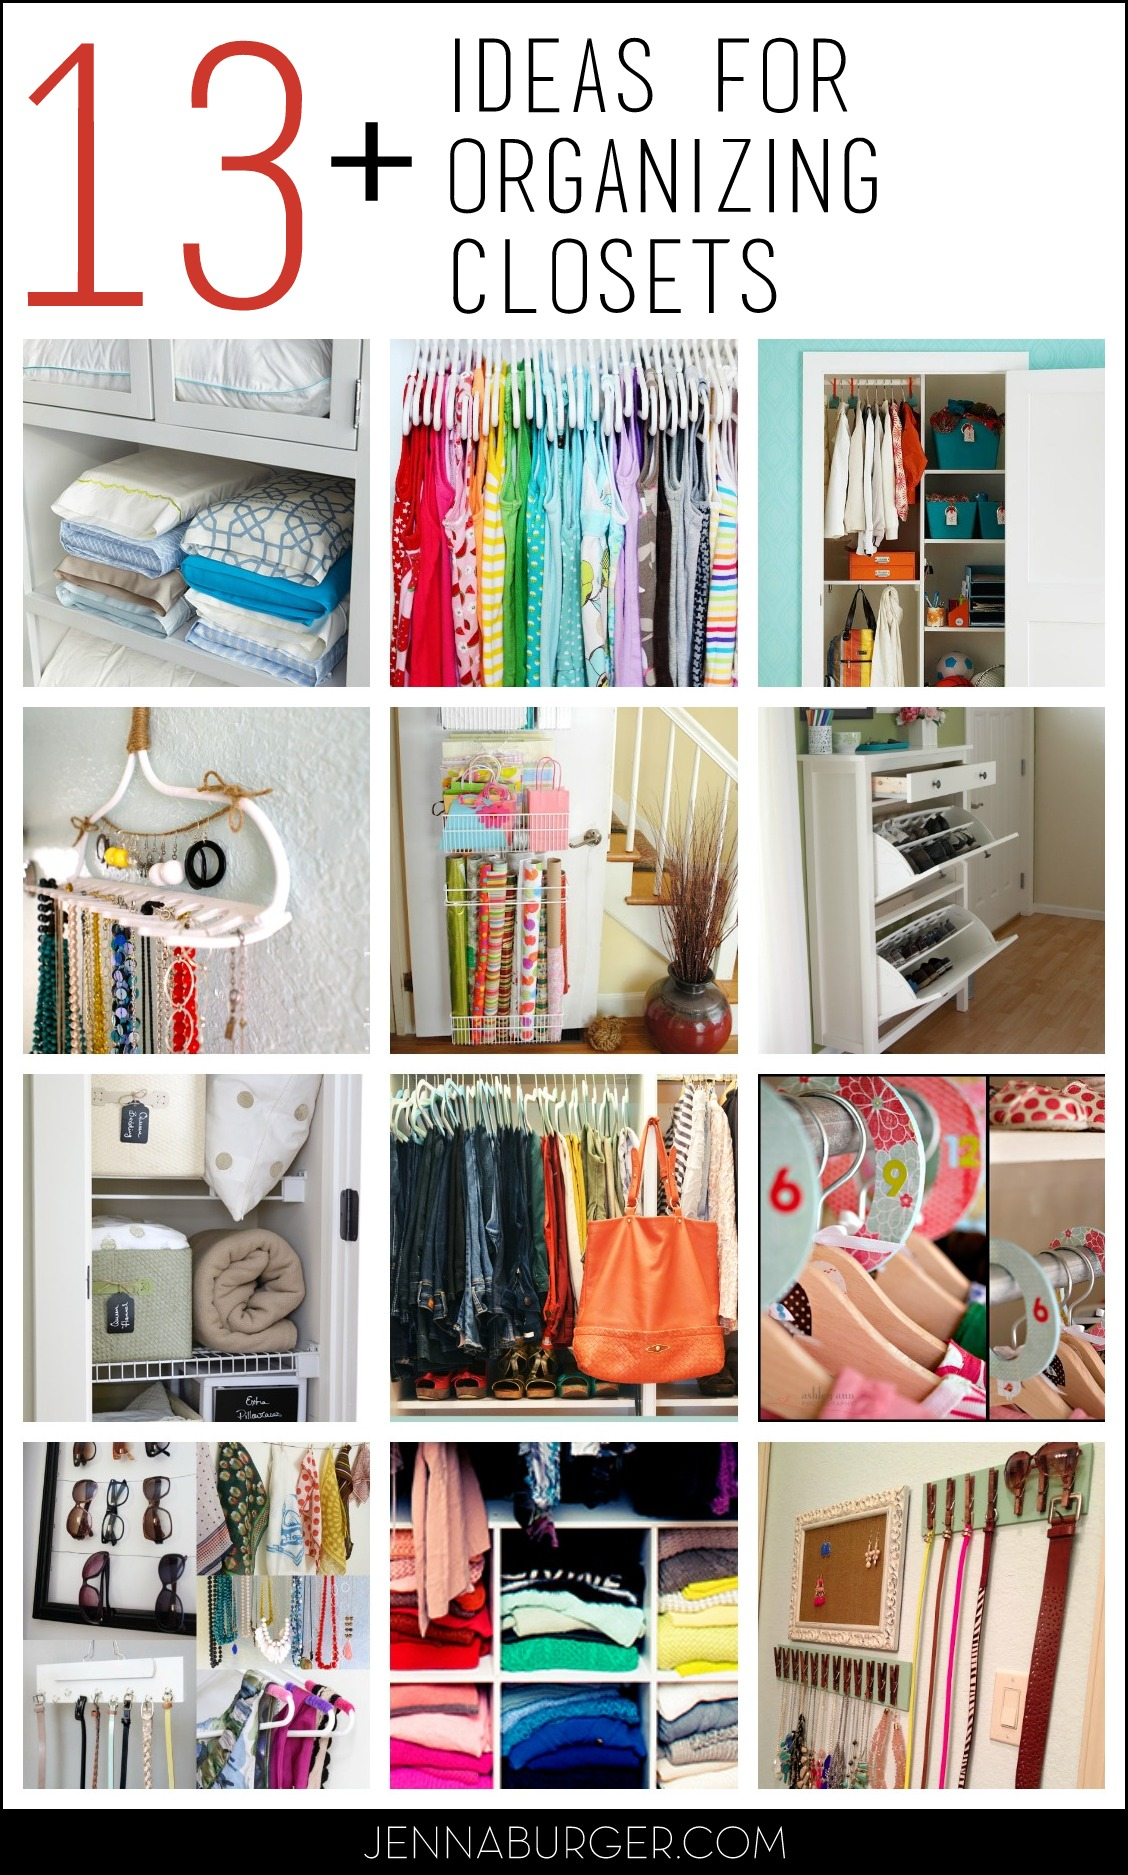 13 Organizational Ideas For Closets Tips Tricks To Help Organize Every All Types